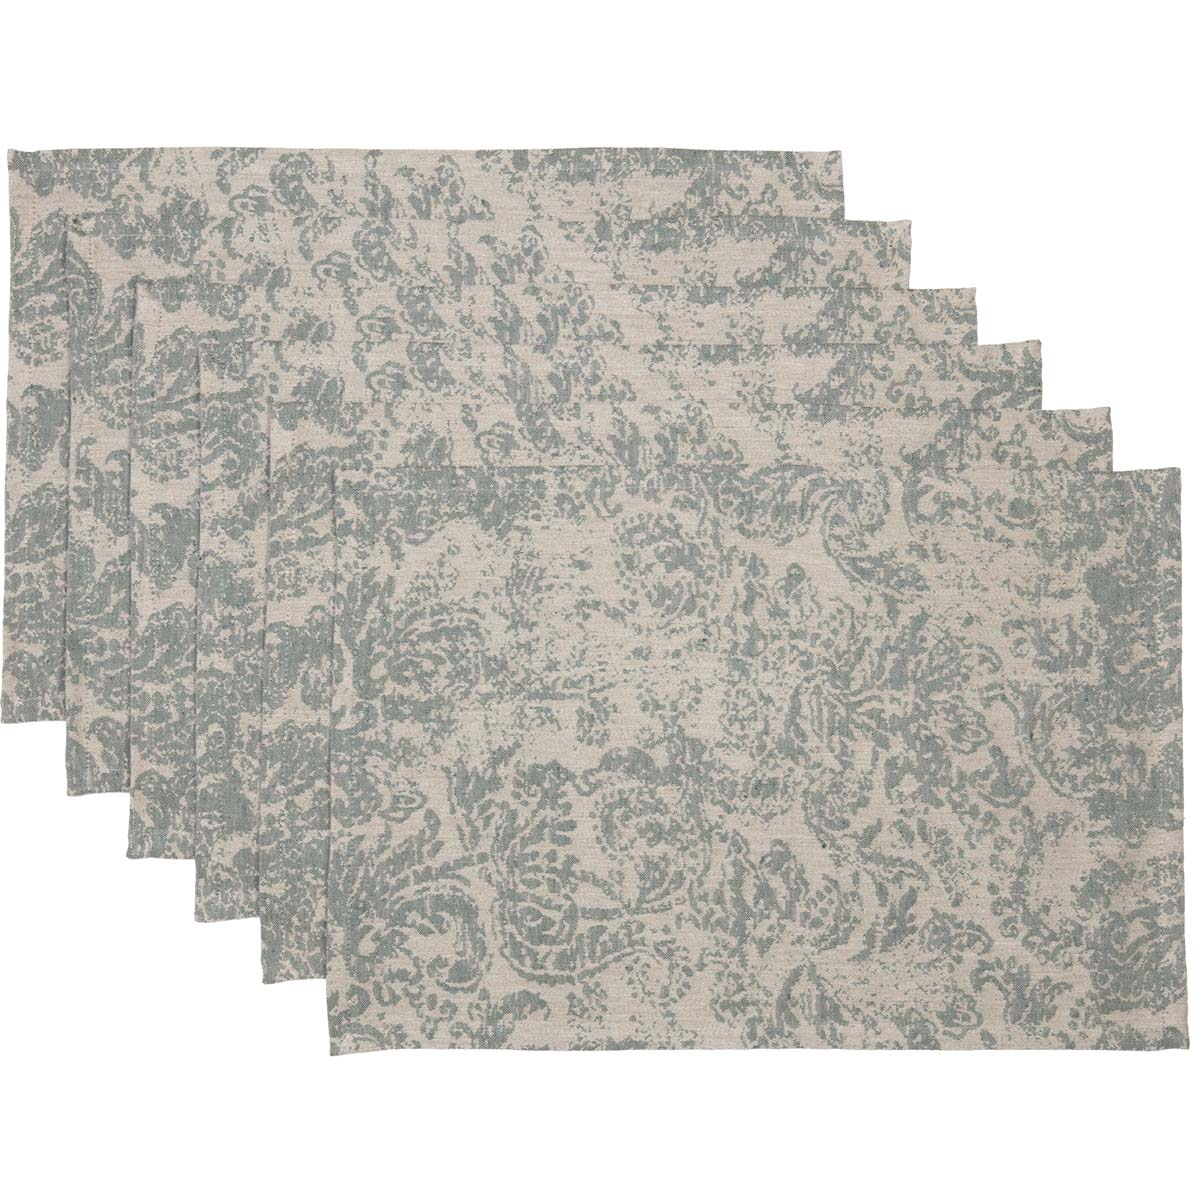 Rebecca Green Placemat Set of 6 12x18